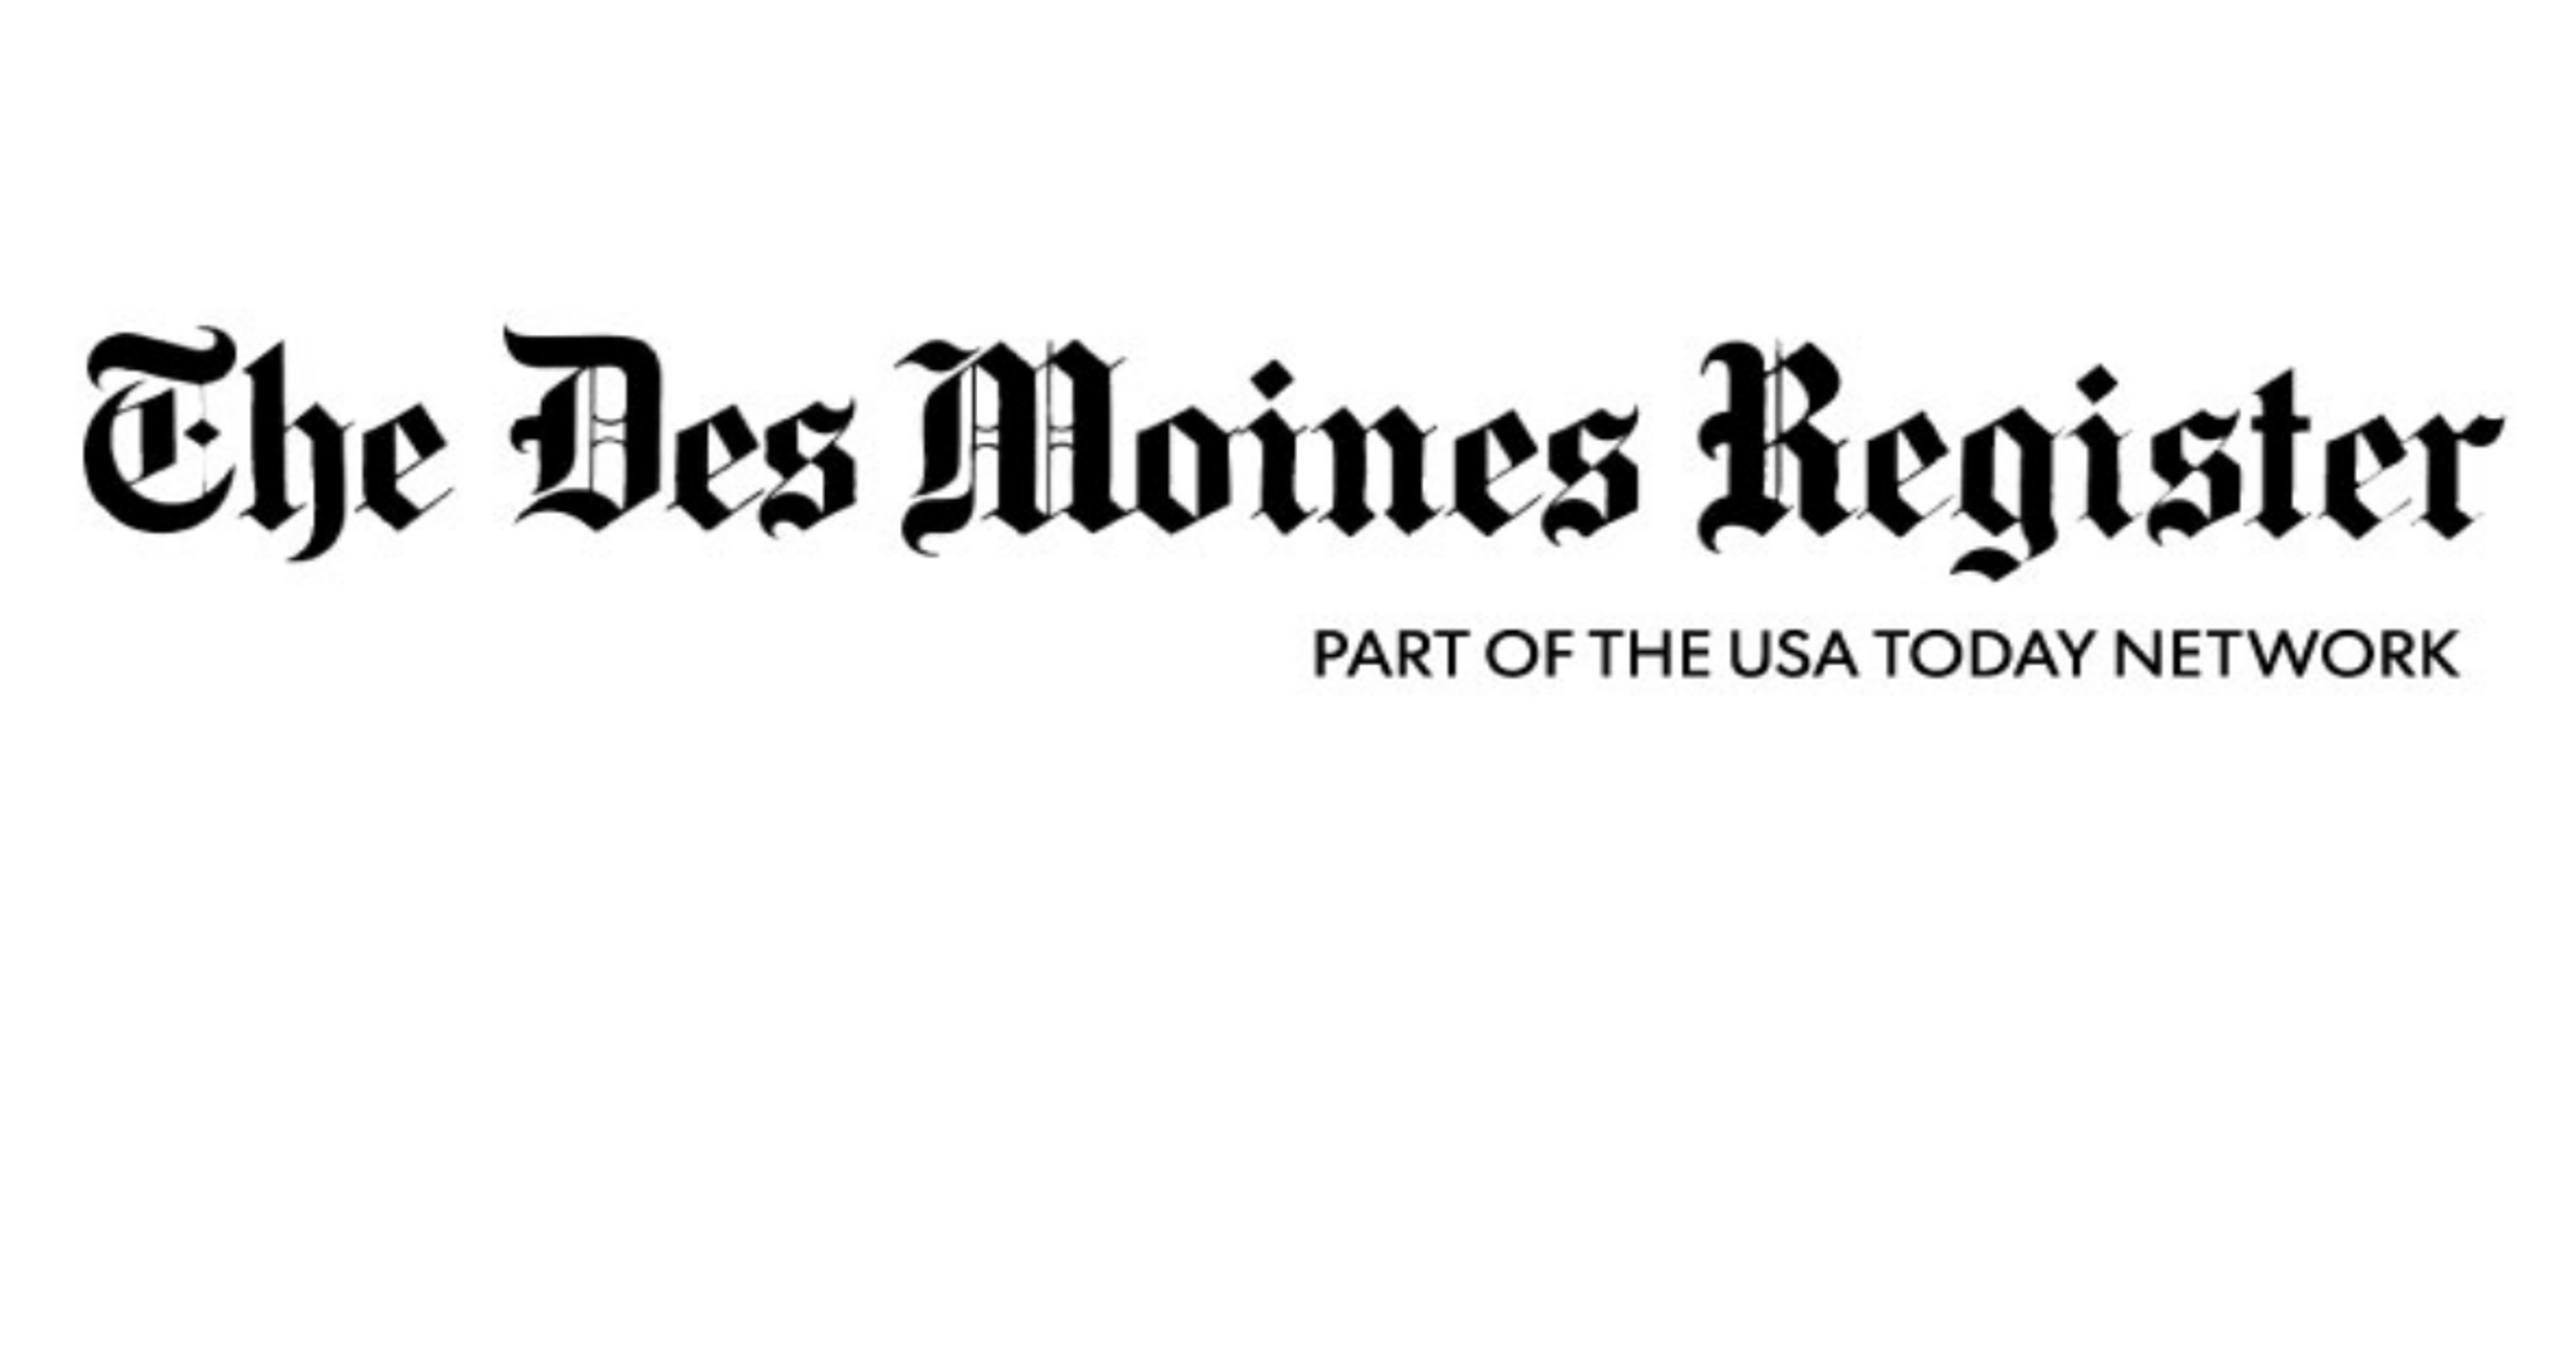 Des Moines Register adds USA TODAY Network to its name